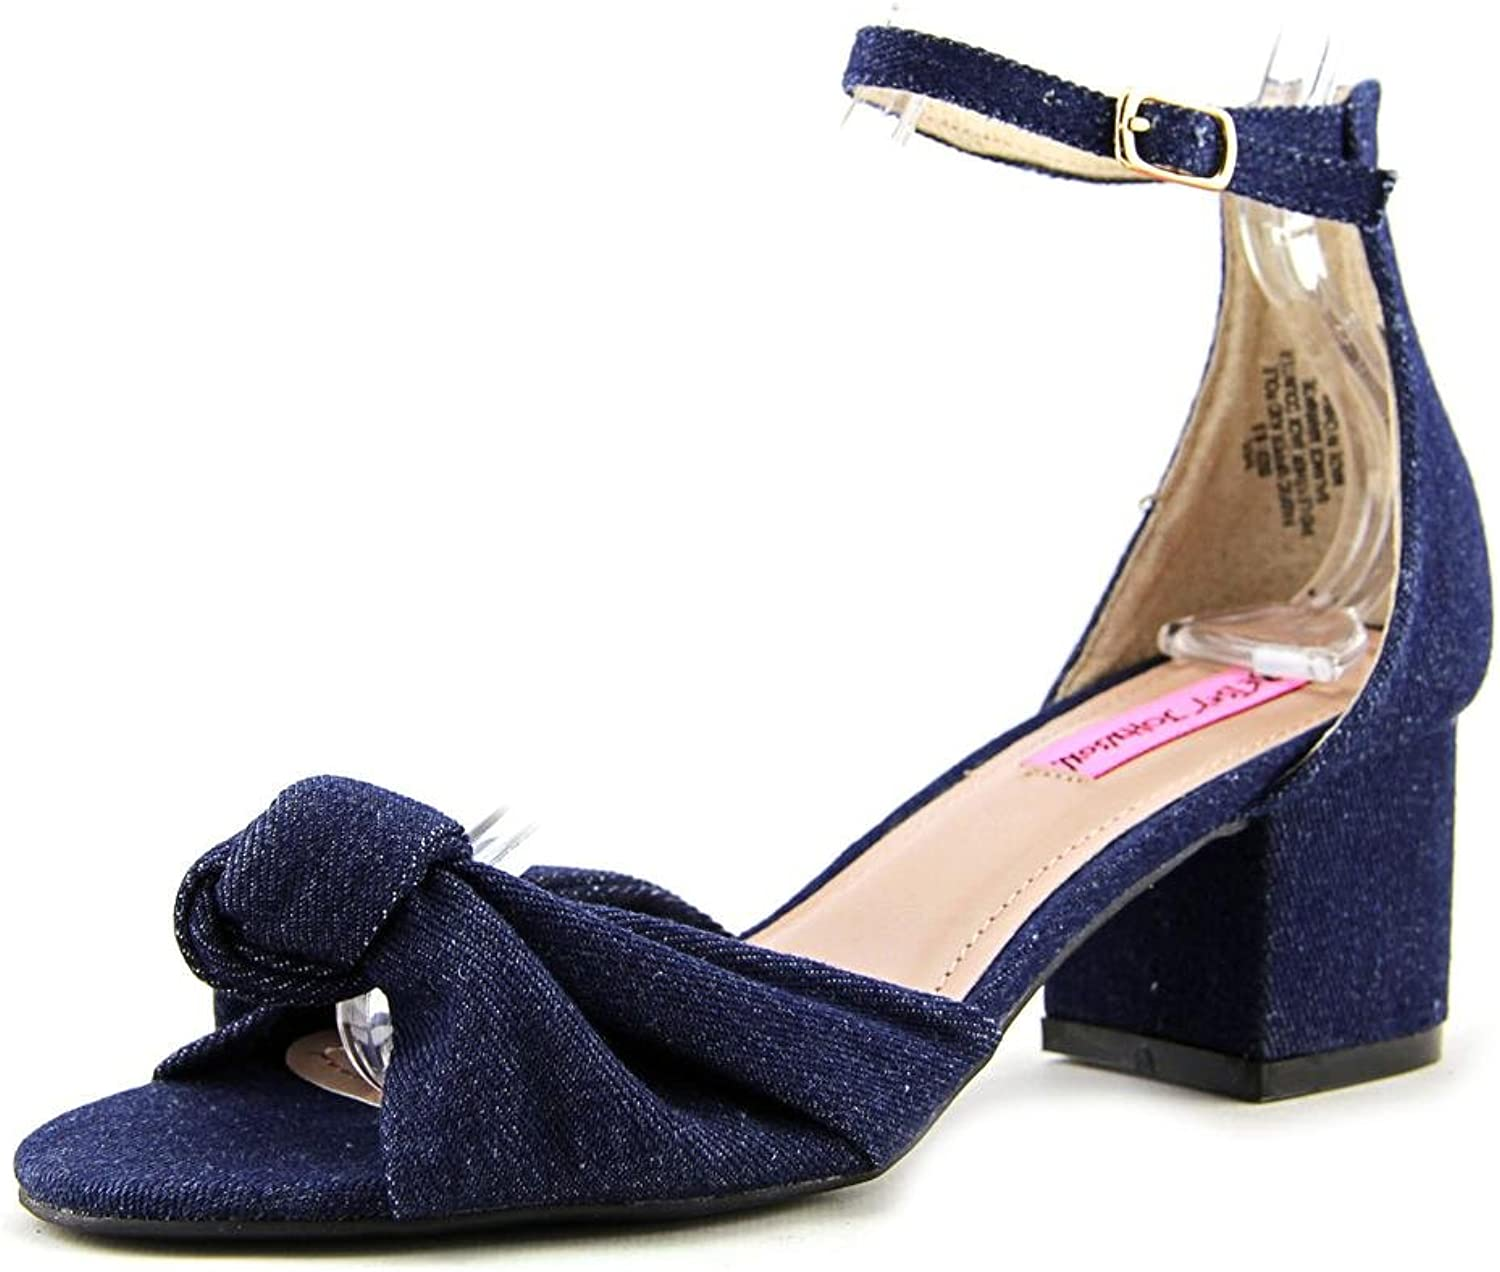 Betsey Johnson Ivee Ankle Strap Sandals, bluee Gingham